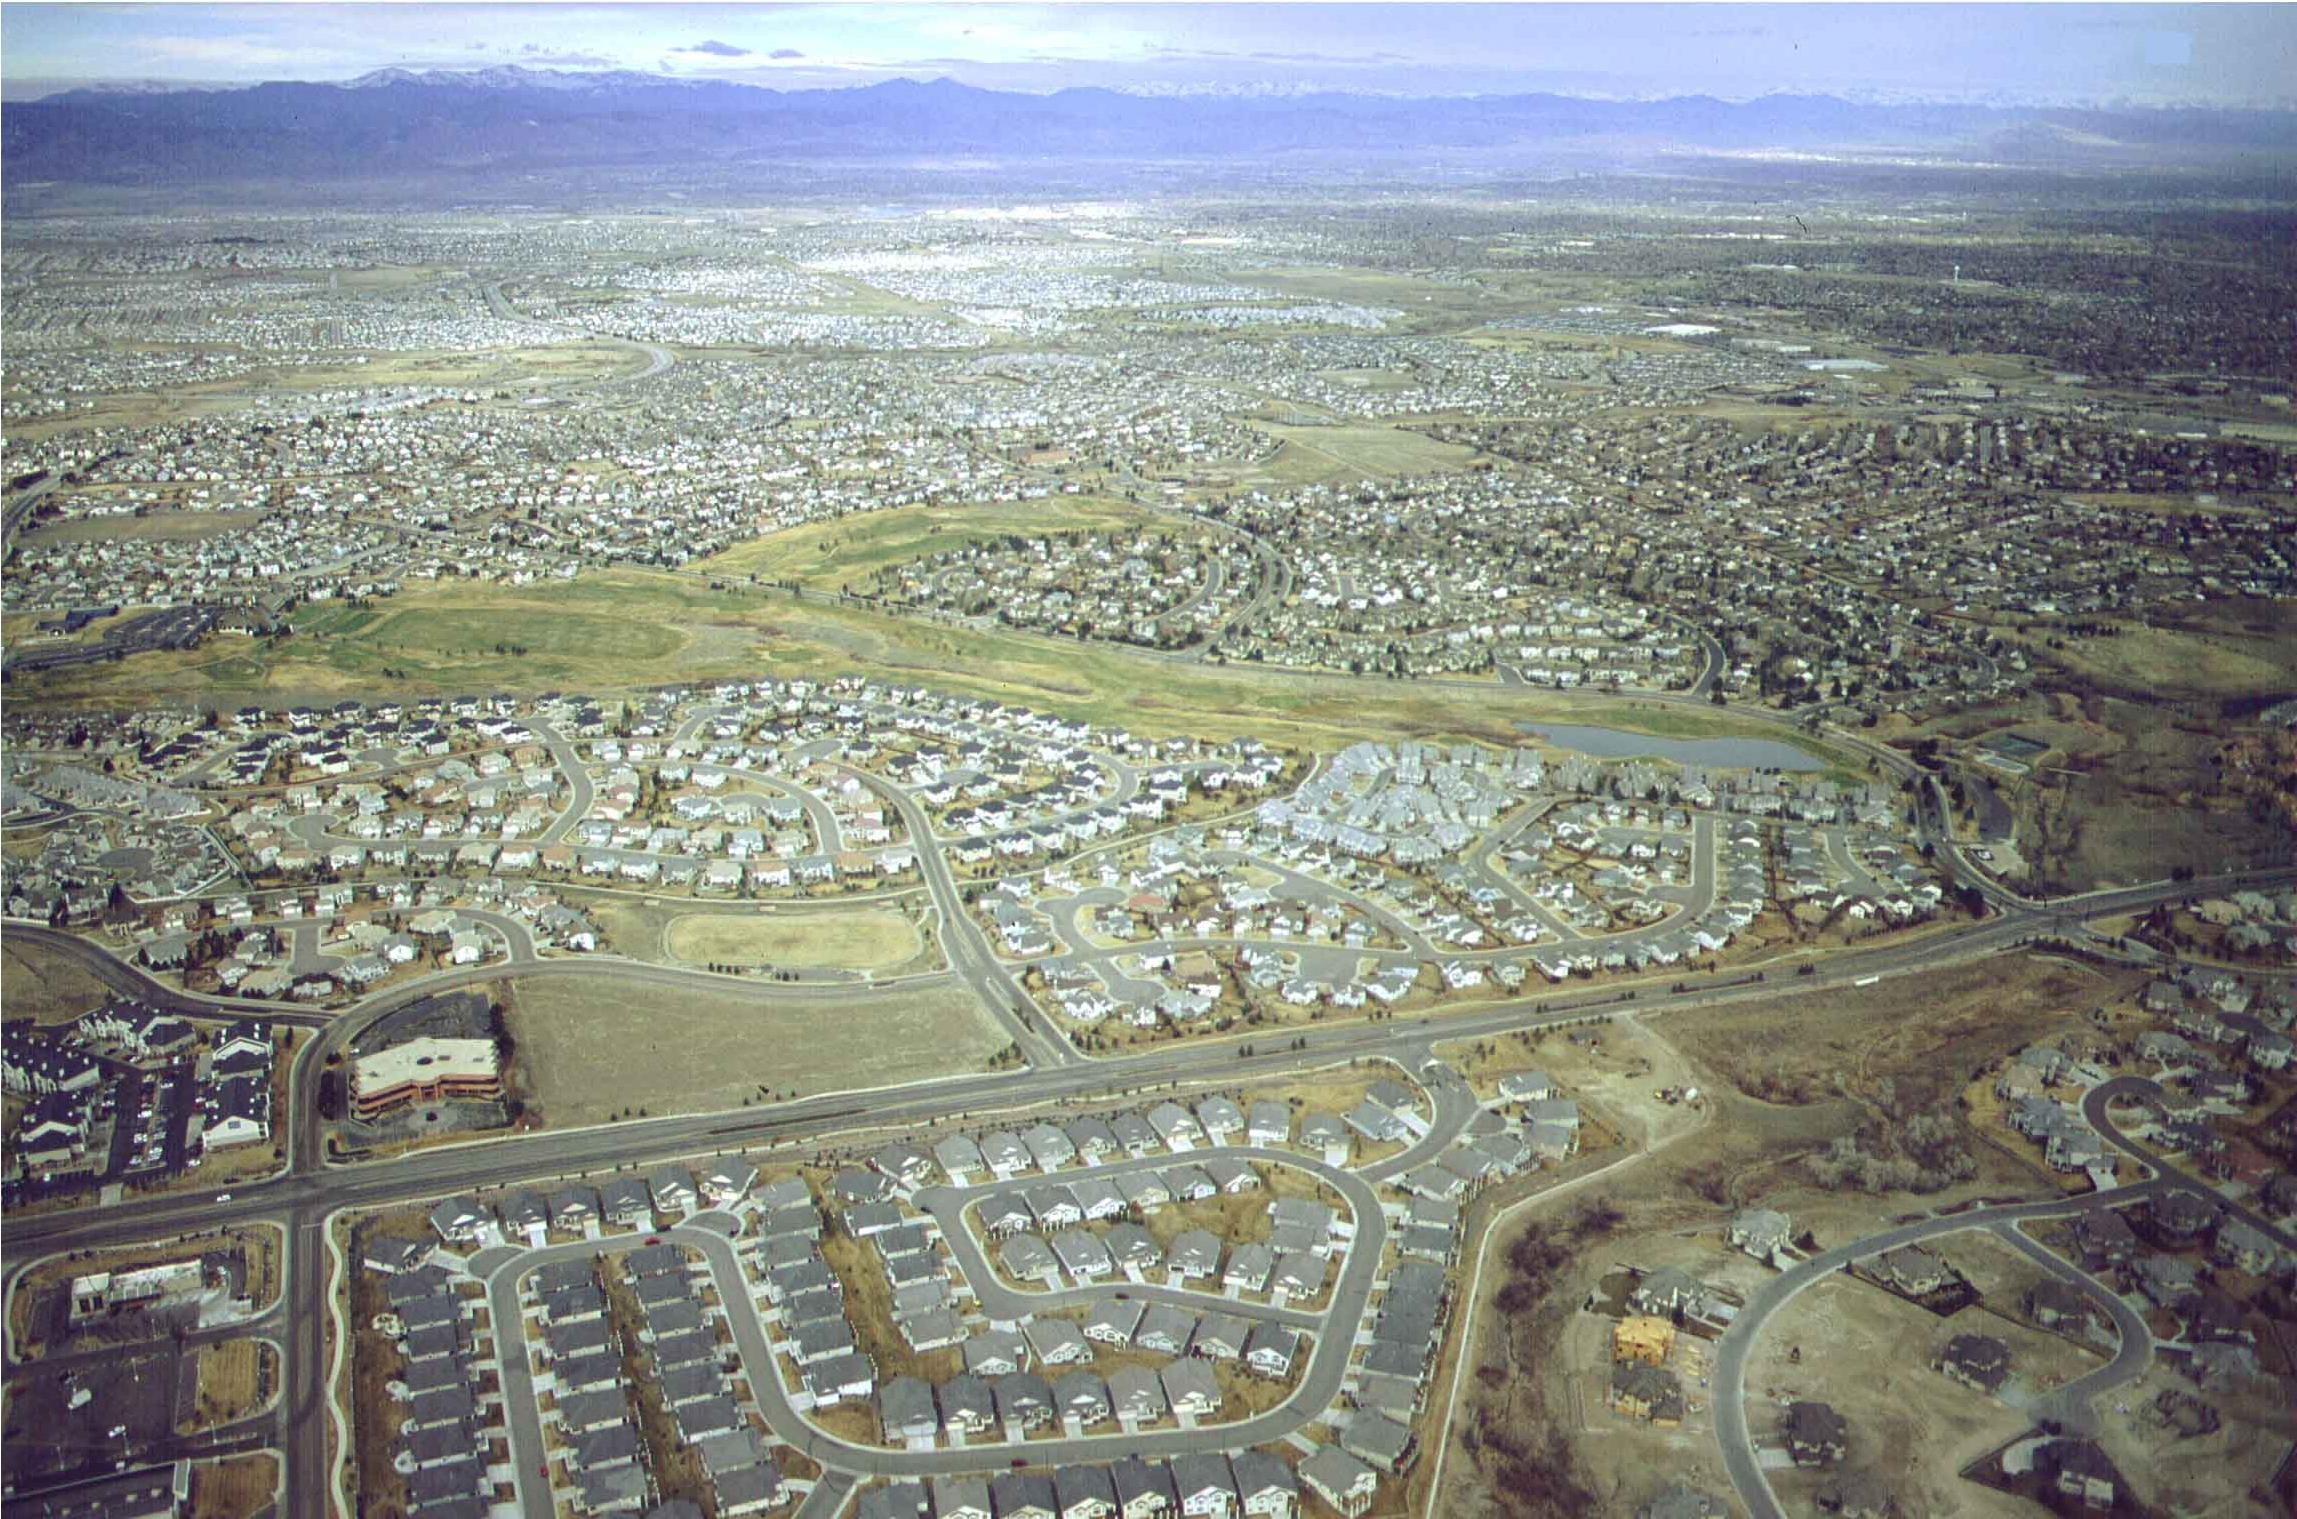 Urban sprawl vs. compact cities: whats the smart solution